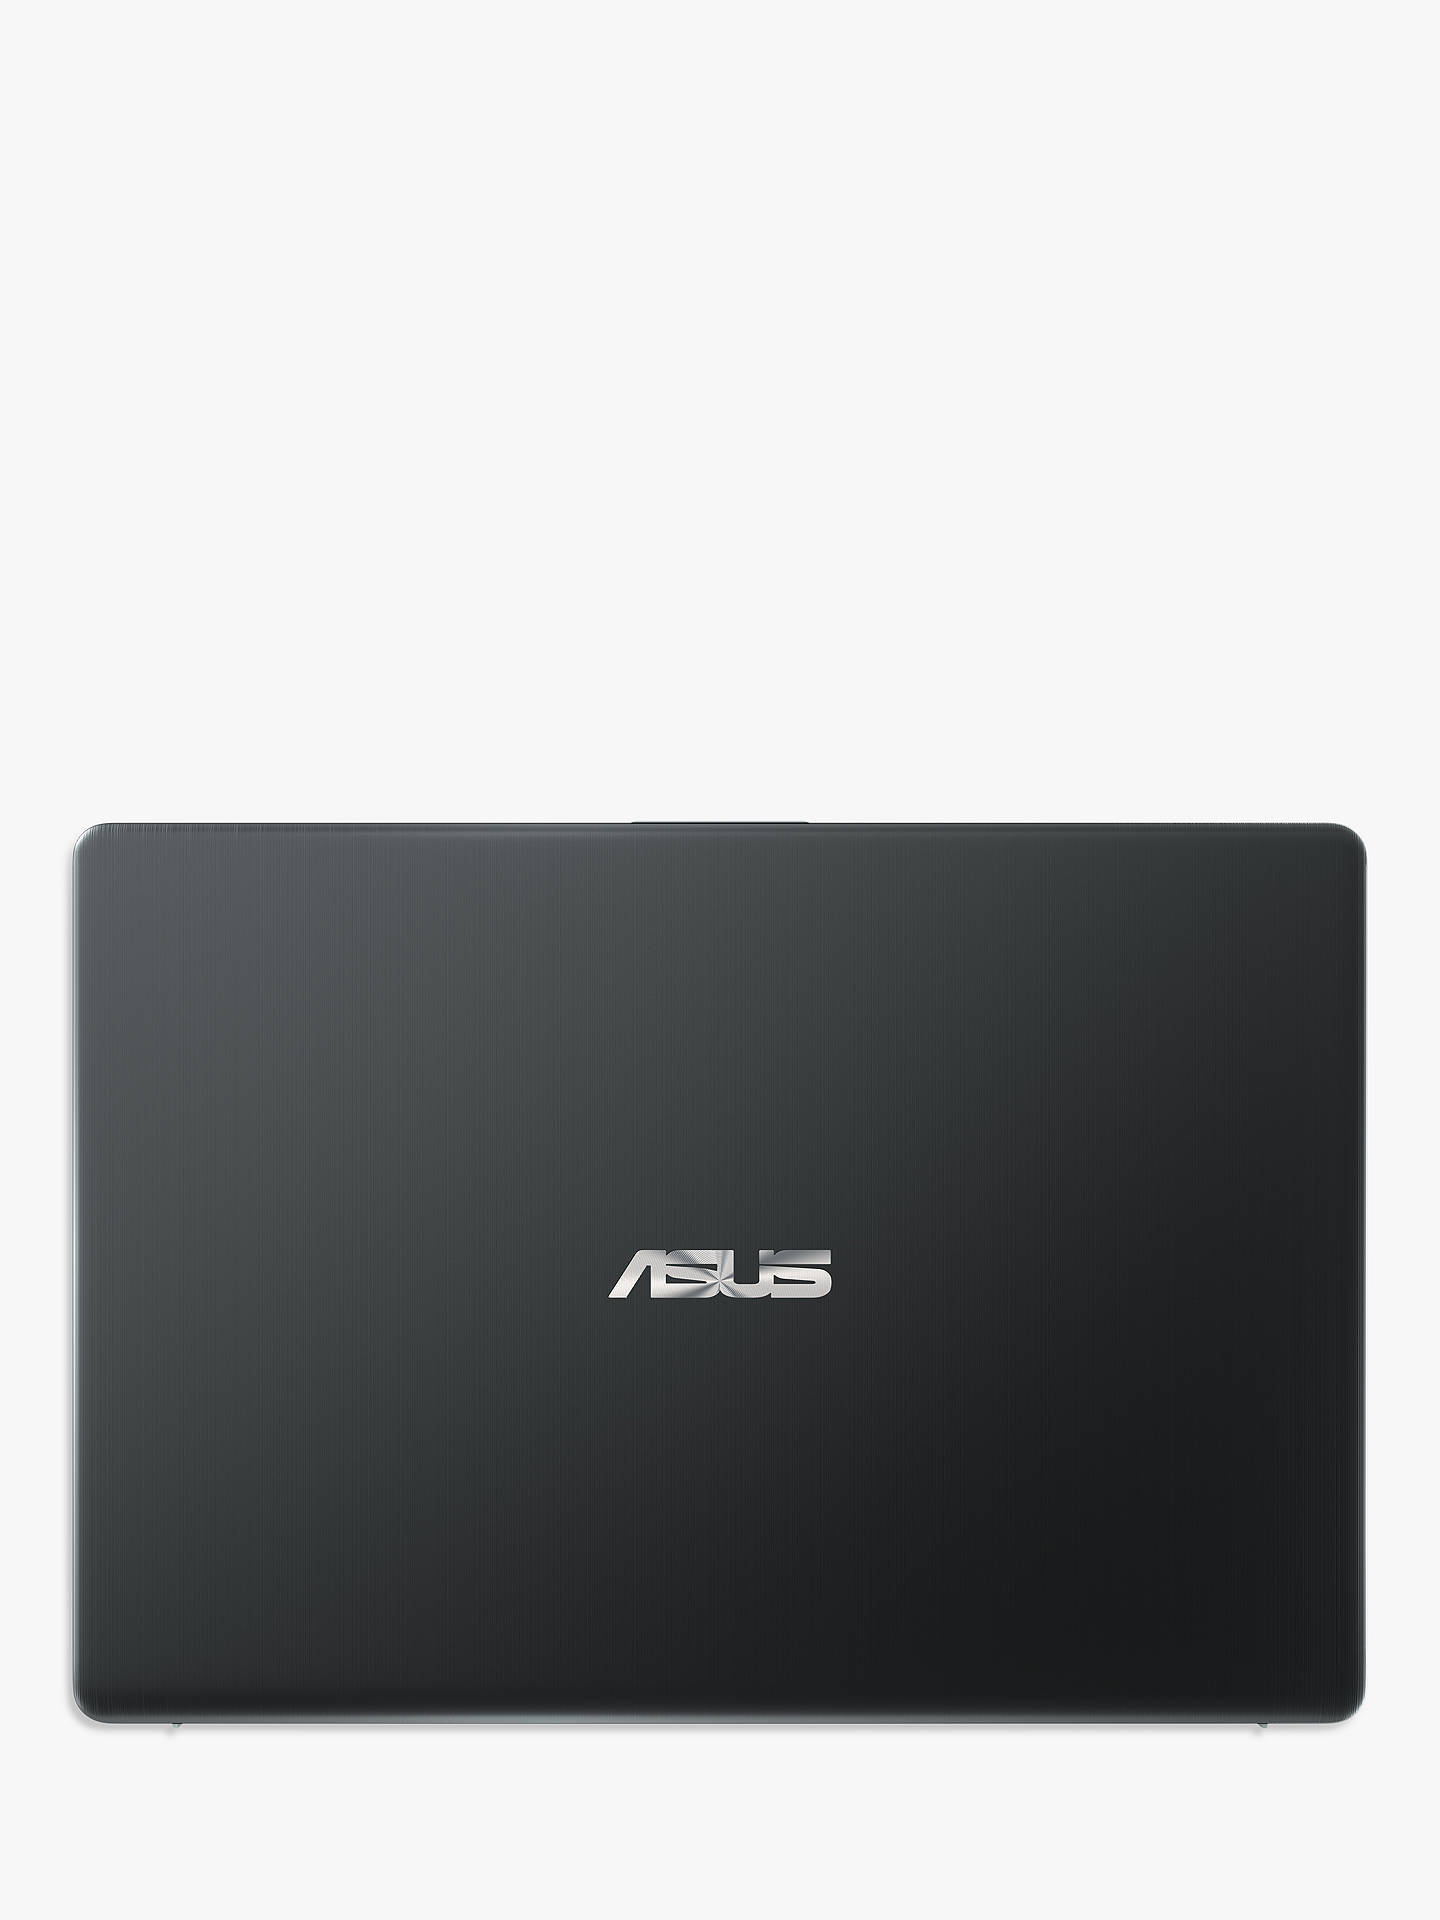 ASUS Vivobook S14 S430FA-EB021T Laptop, Intel Core i3 Processor, 4GB RAM,  256GB SSD, 14